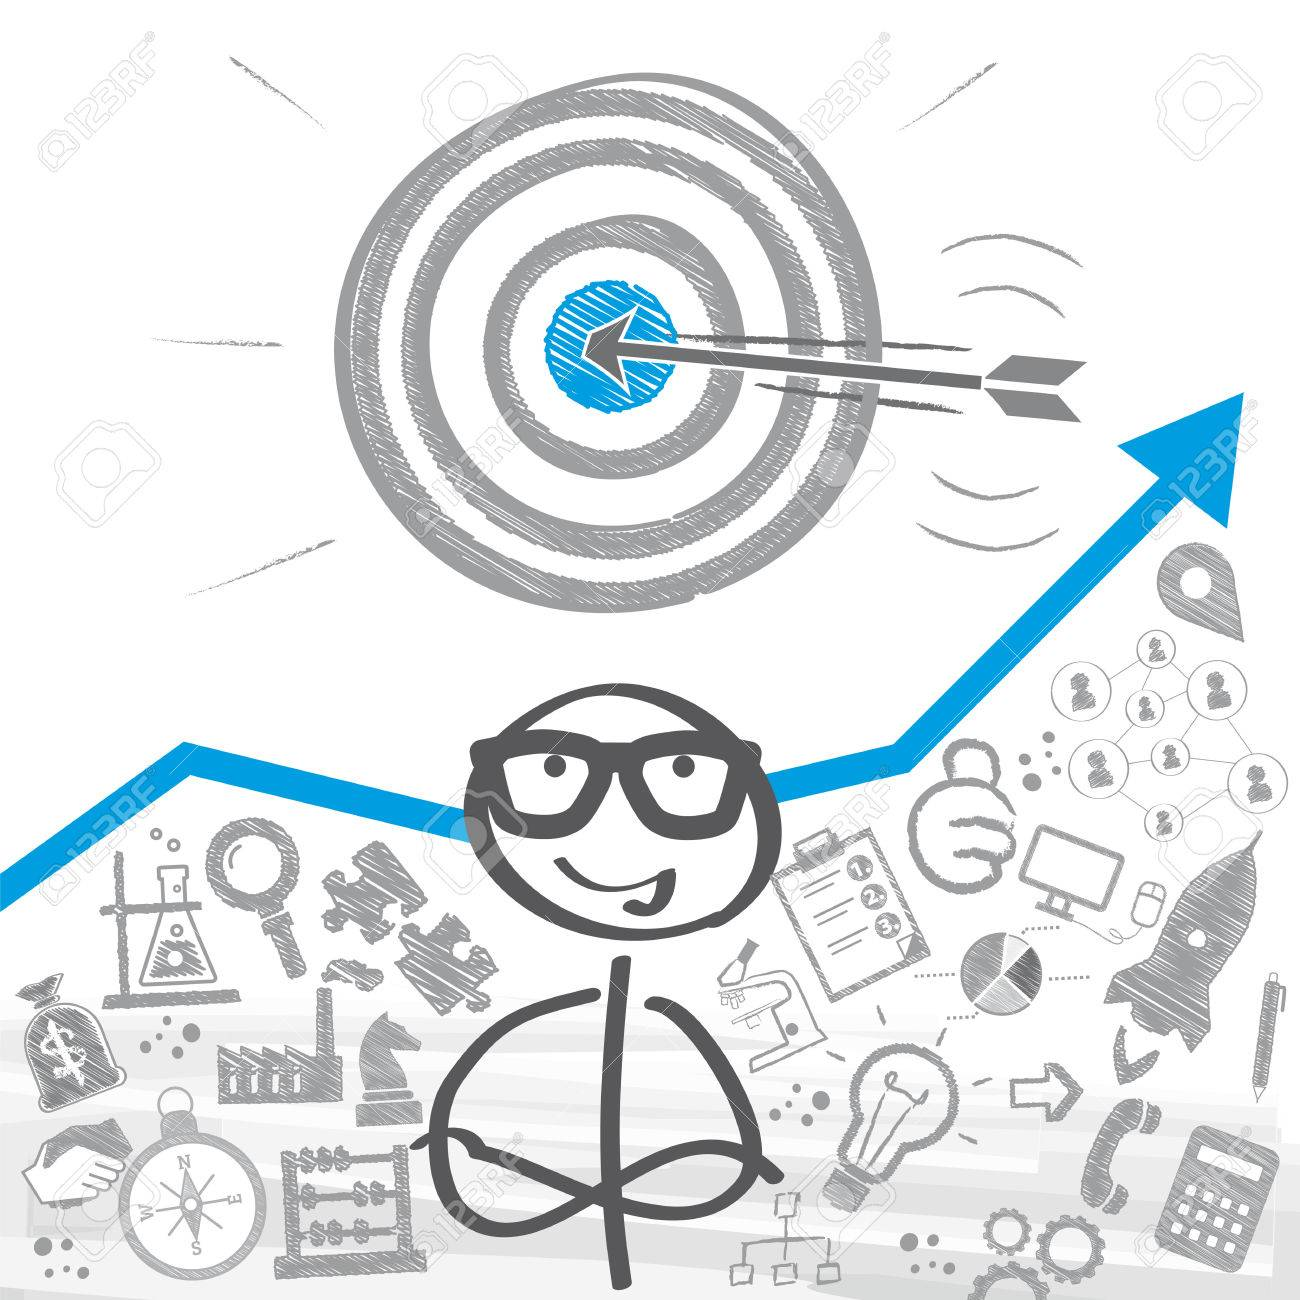 Stick figure standing in front of a setting goals concept - 71970123